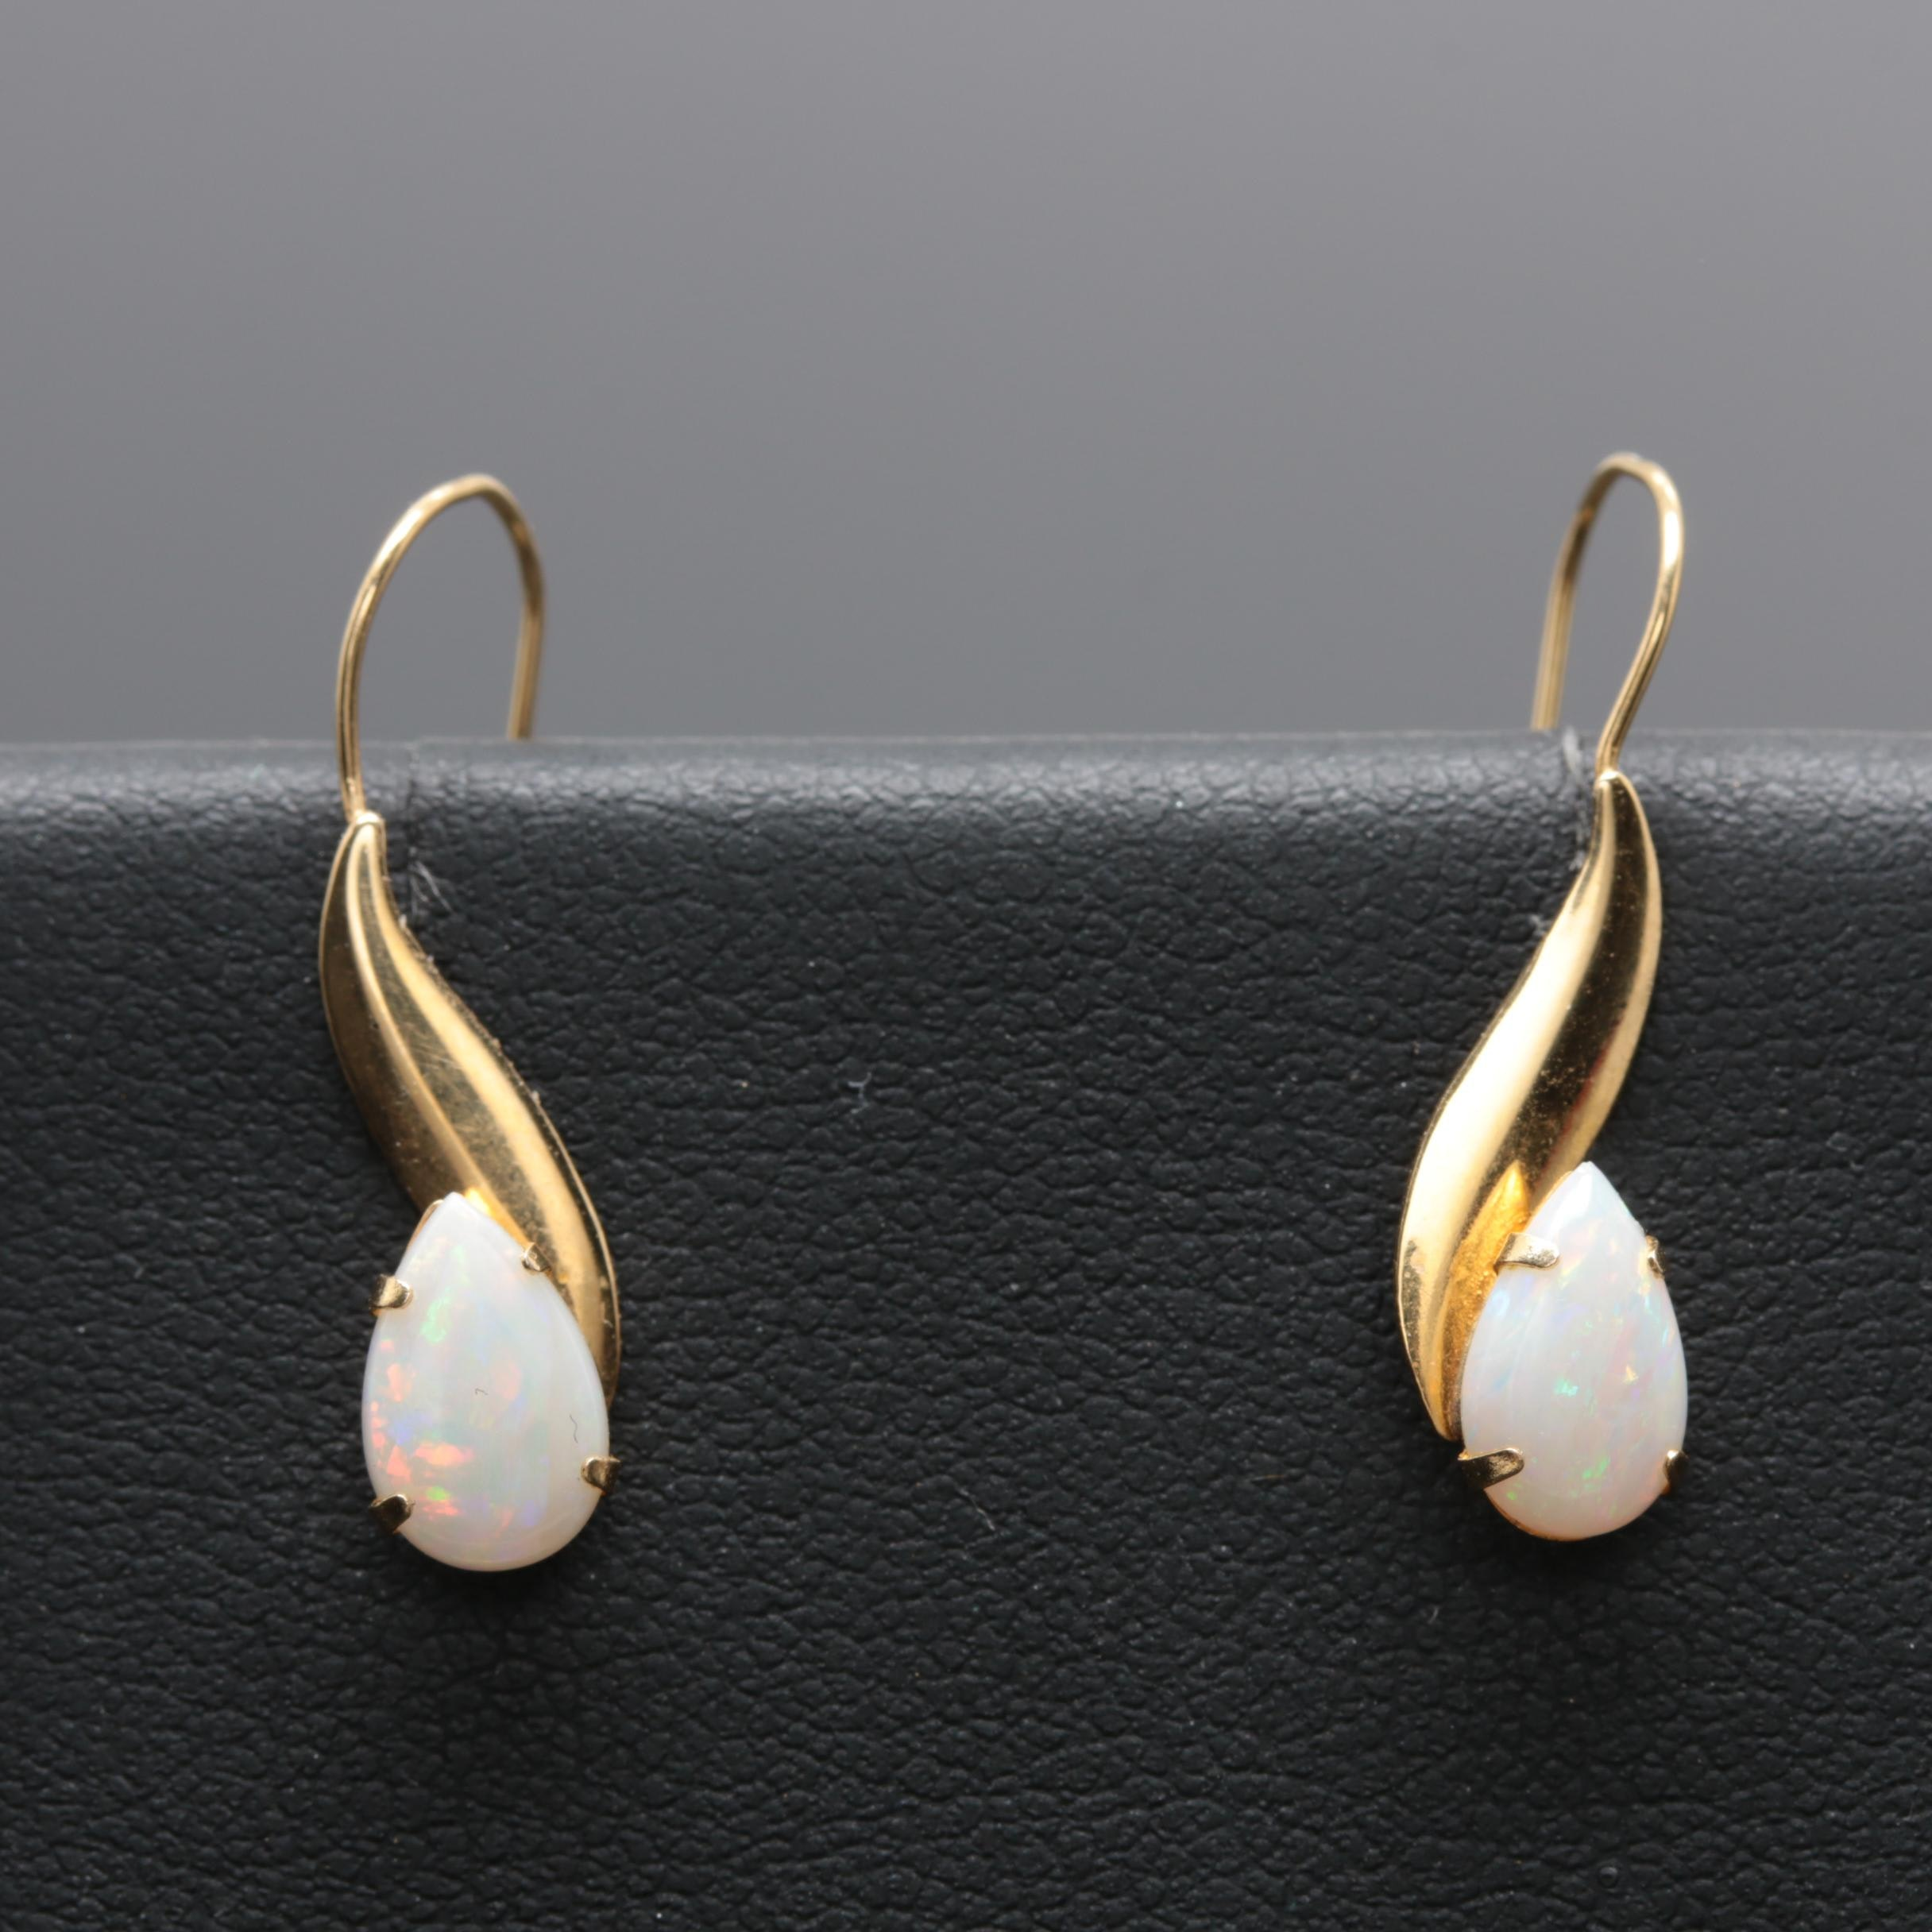 Opal Earrings with 14K Yellow Gold Earwires